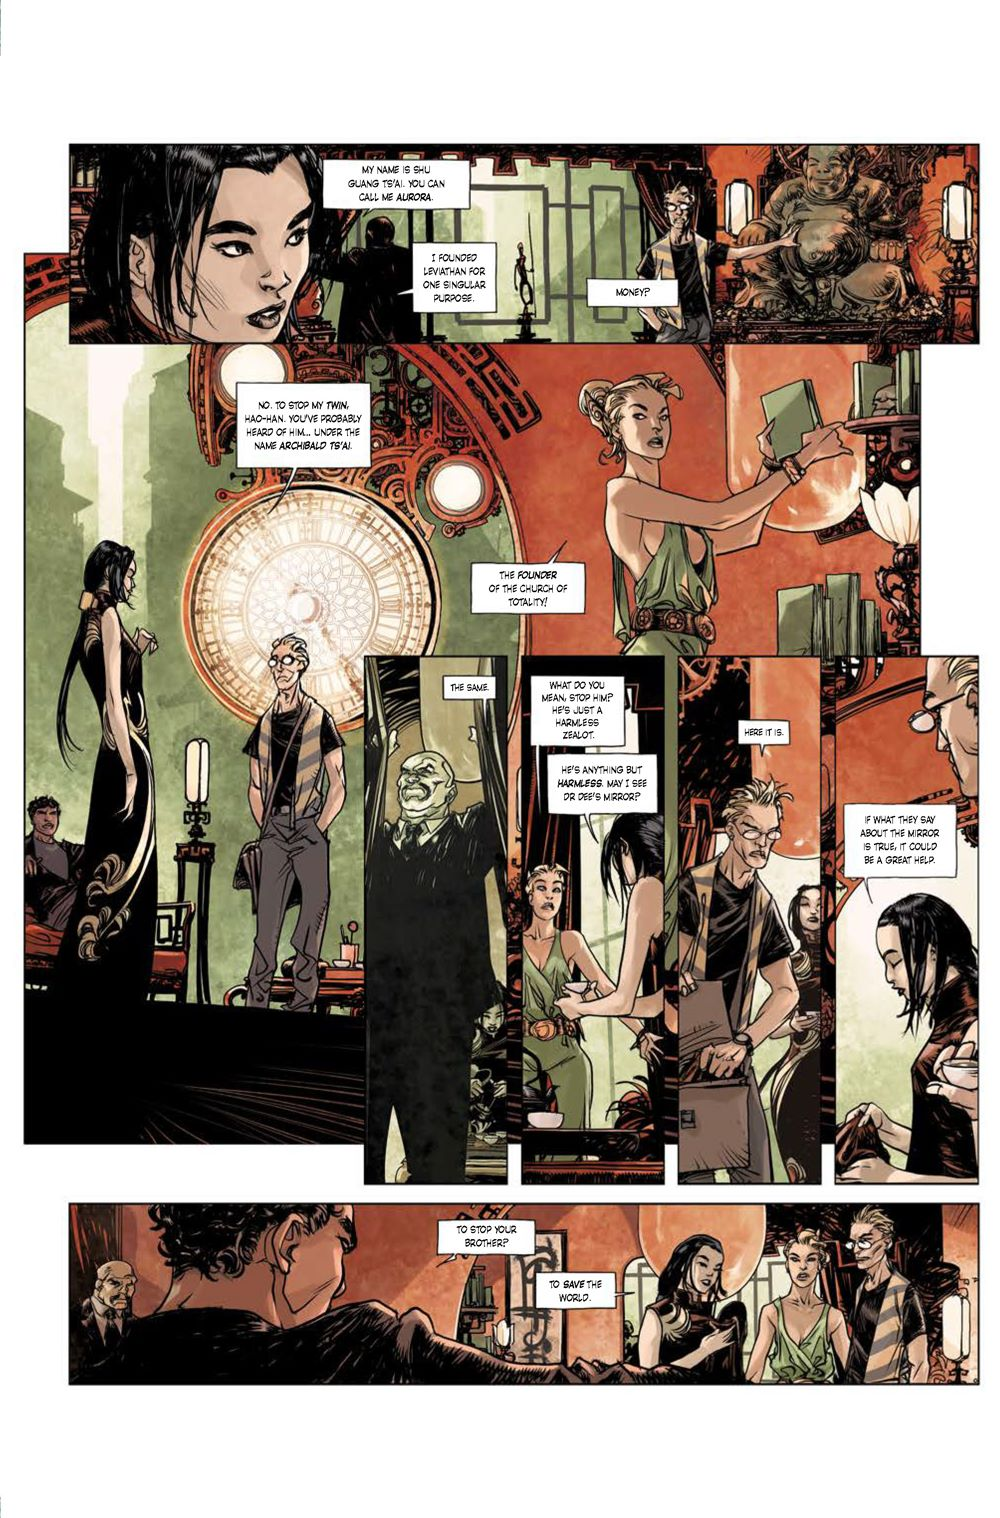 Cutting-Edge-The-Devils-Mirror-2-Binder1_Page_2 ComicList Previews: CUTTING EDGE THE DEVIL'S MIRROR #2 (OF 2)